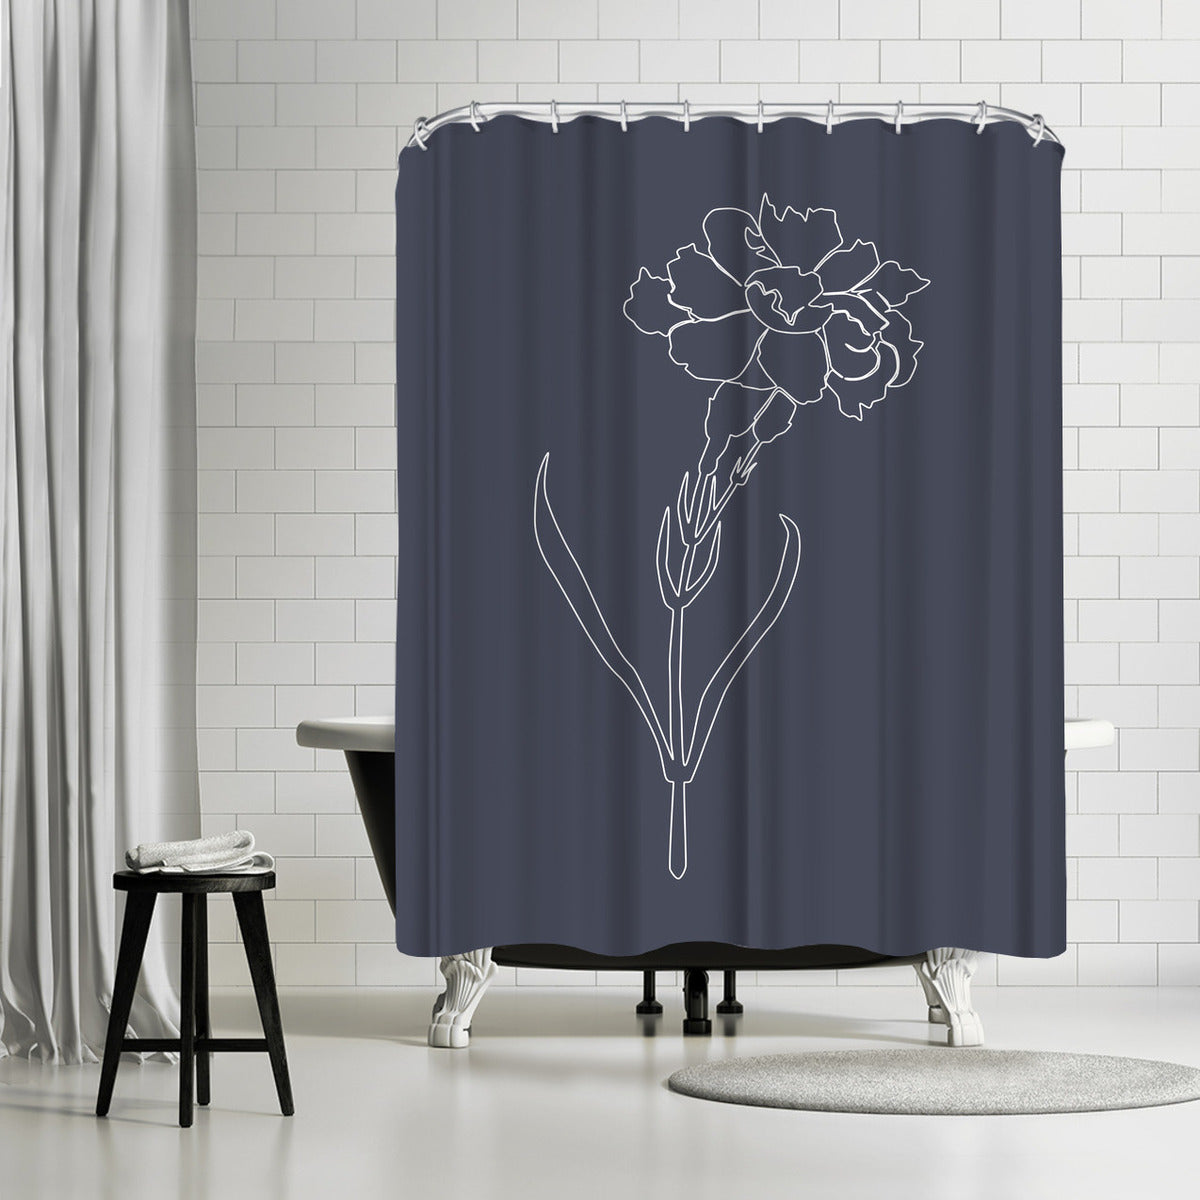 Black Flame Carnation by Explicit Design Shower Curtain - Shower Curtain - Americanflat